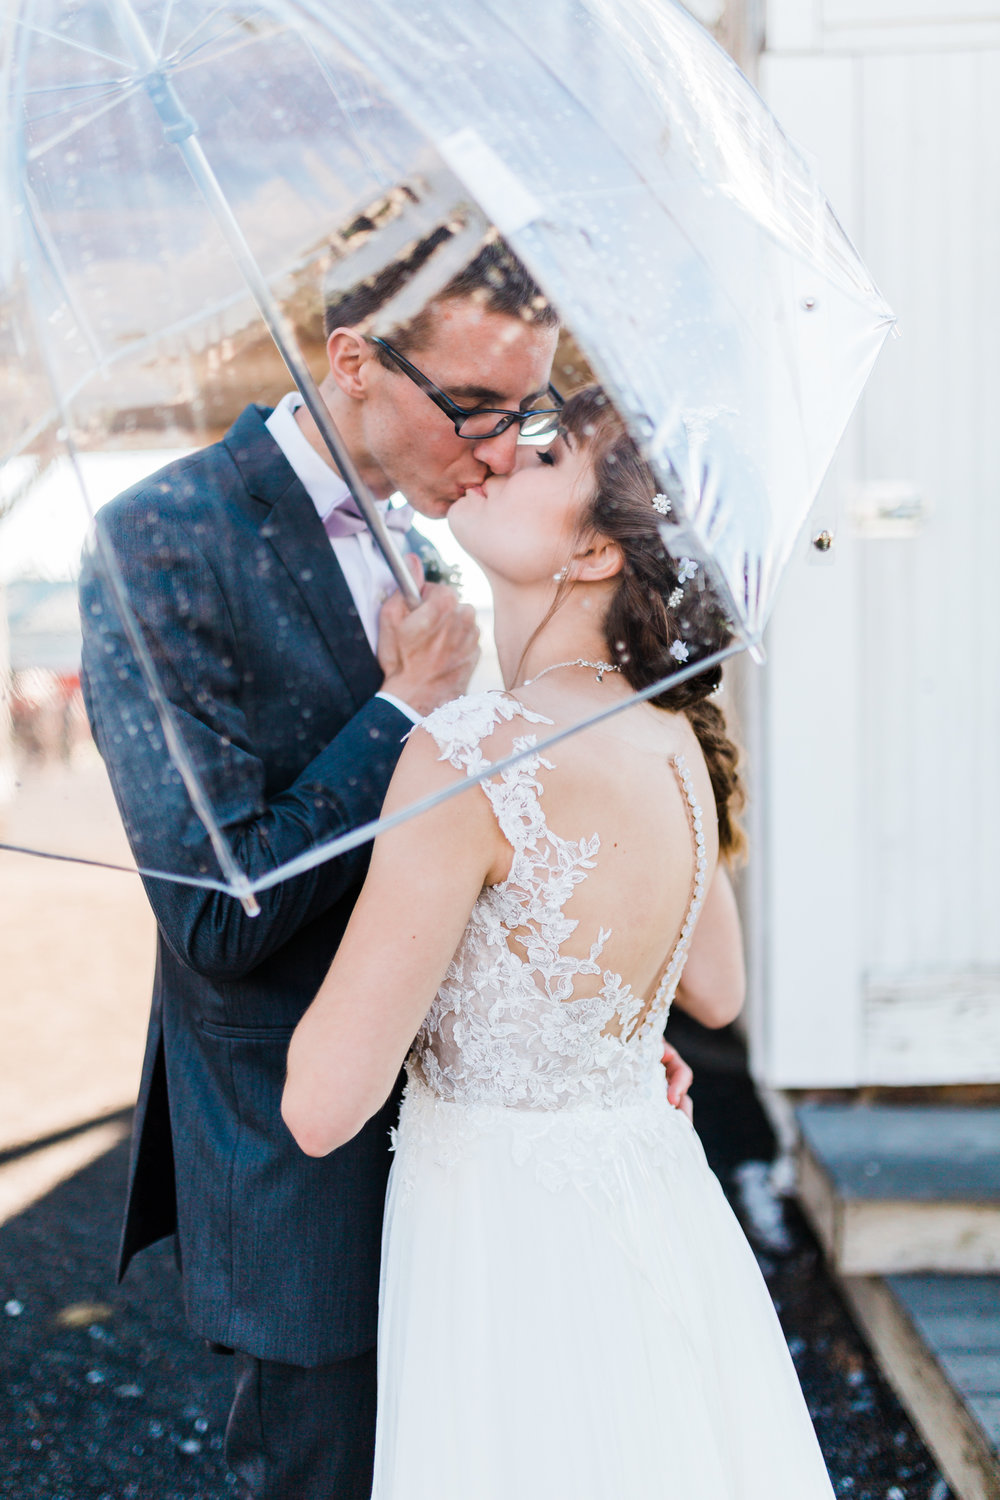 bride and groom share a romantic kiss under an umbrella - top maryland wedding photographer